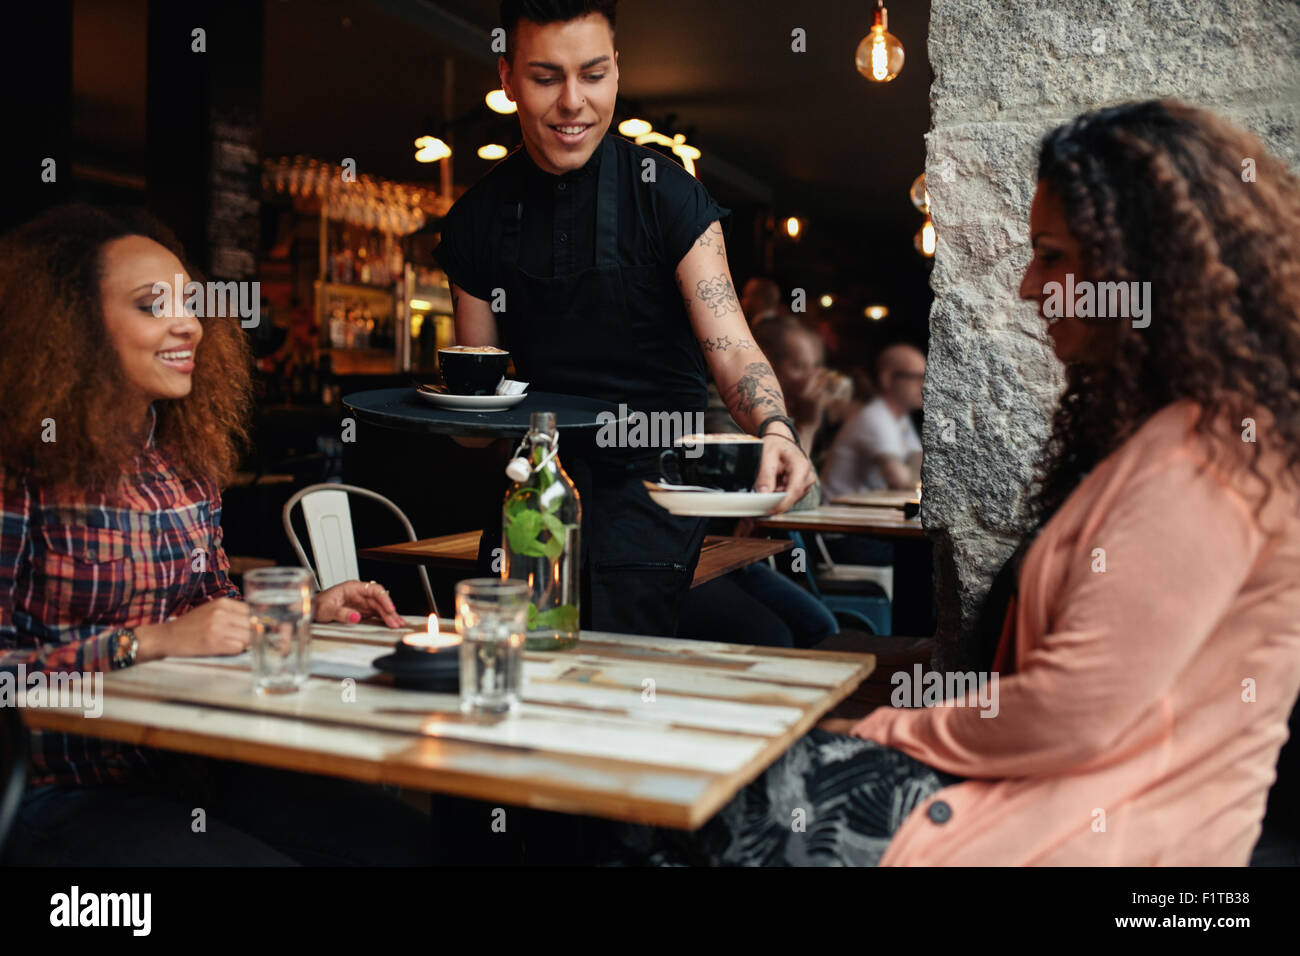 Waiter serving coffee to young women at restaurant. Two female friends at coffee shop. - Stock Image